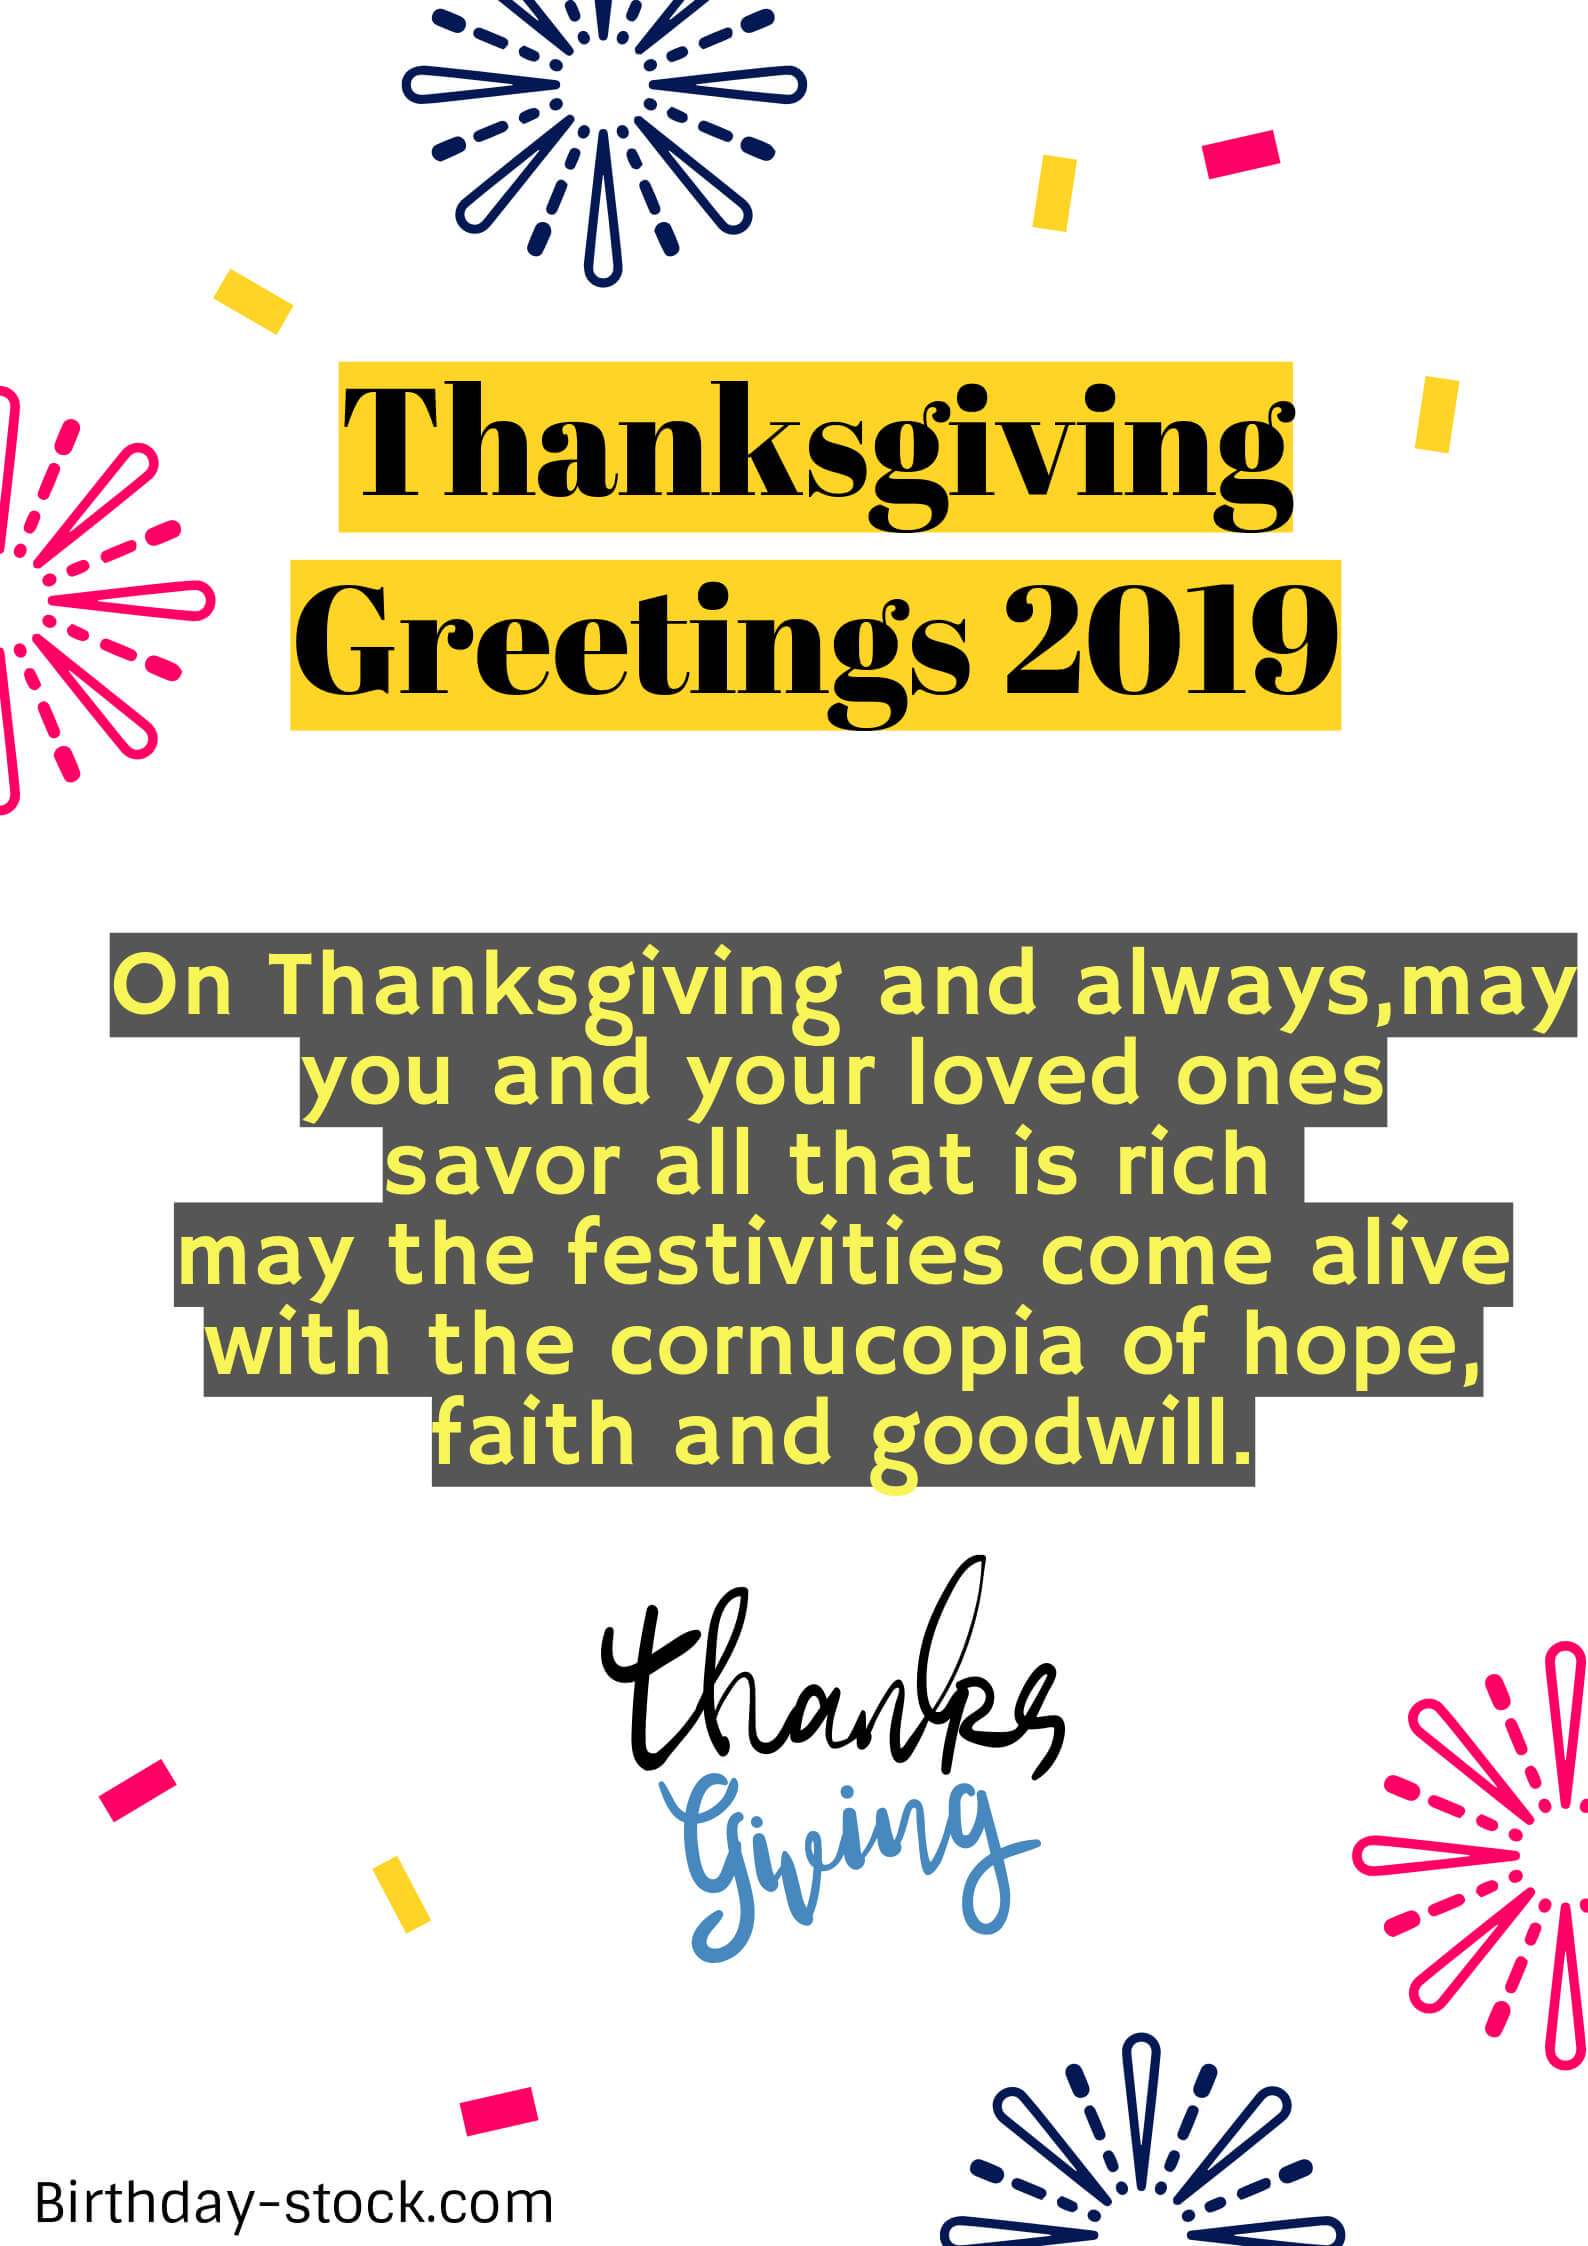 Happy Thanksgiving Greetings Sayings Wishes 2019